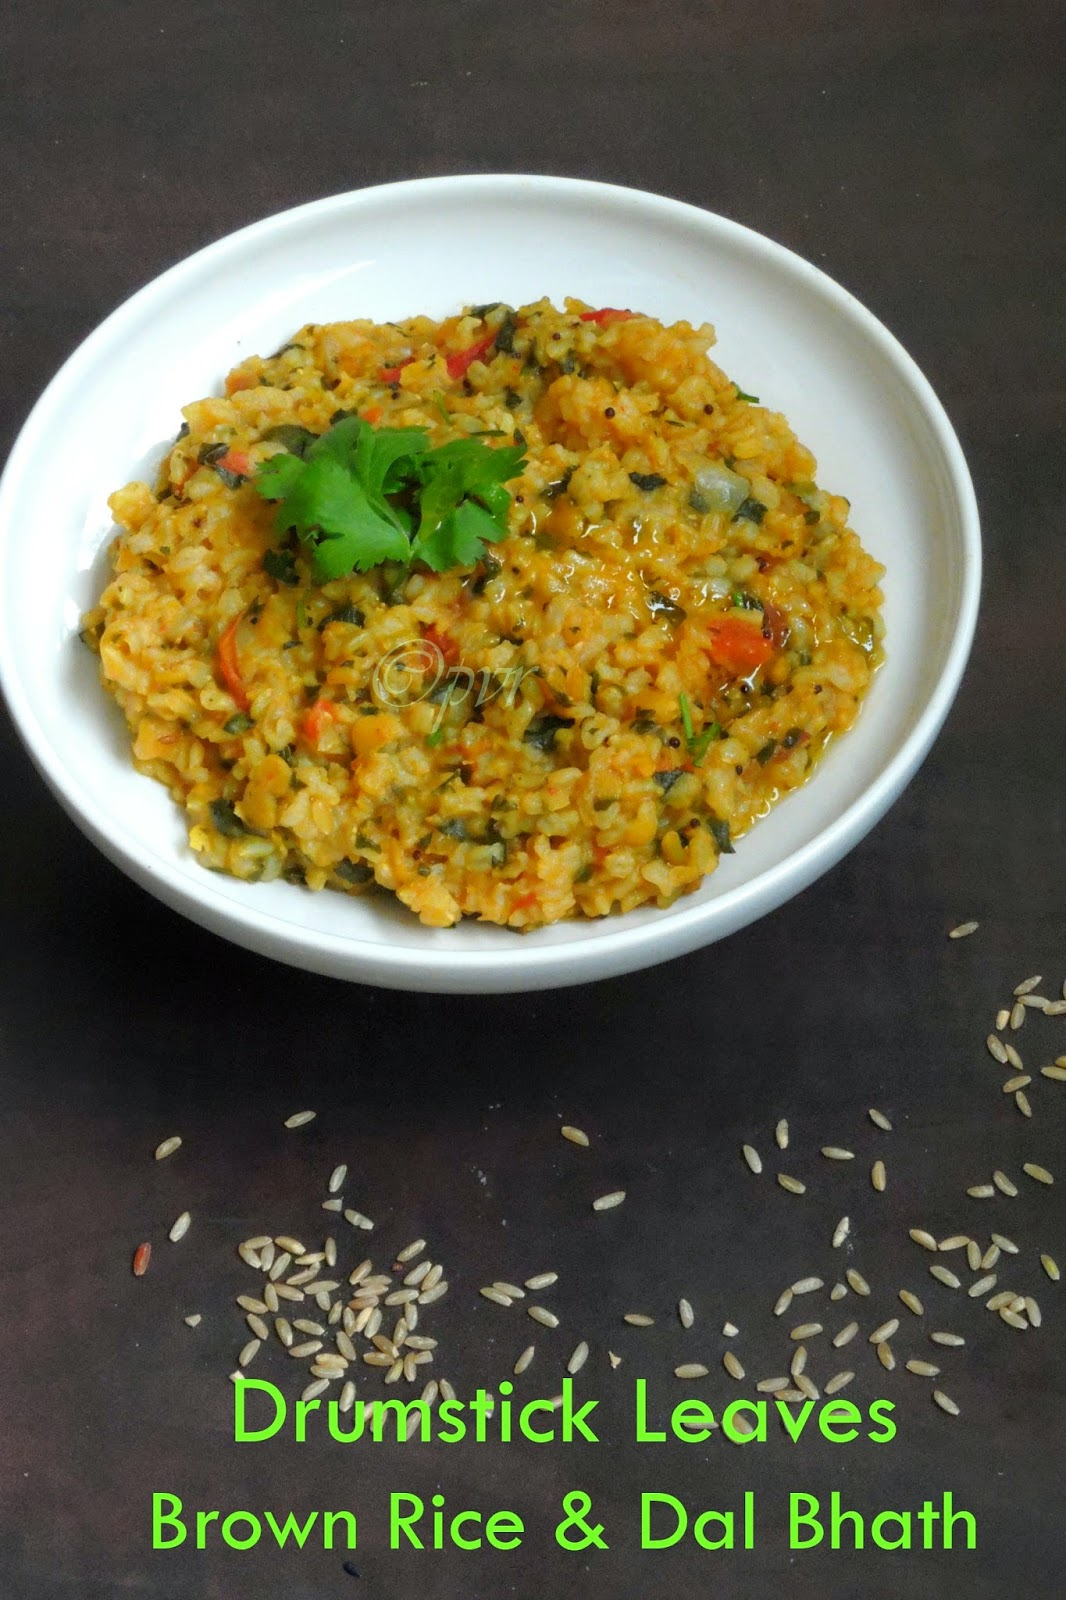 Drumstick Leaves,Brown Rice & Dal Bhath, Brown rice Dal Baath